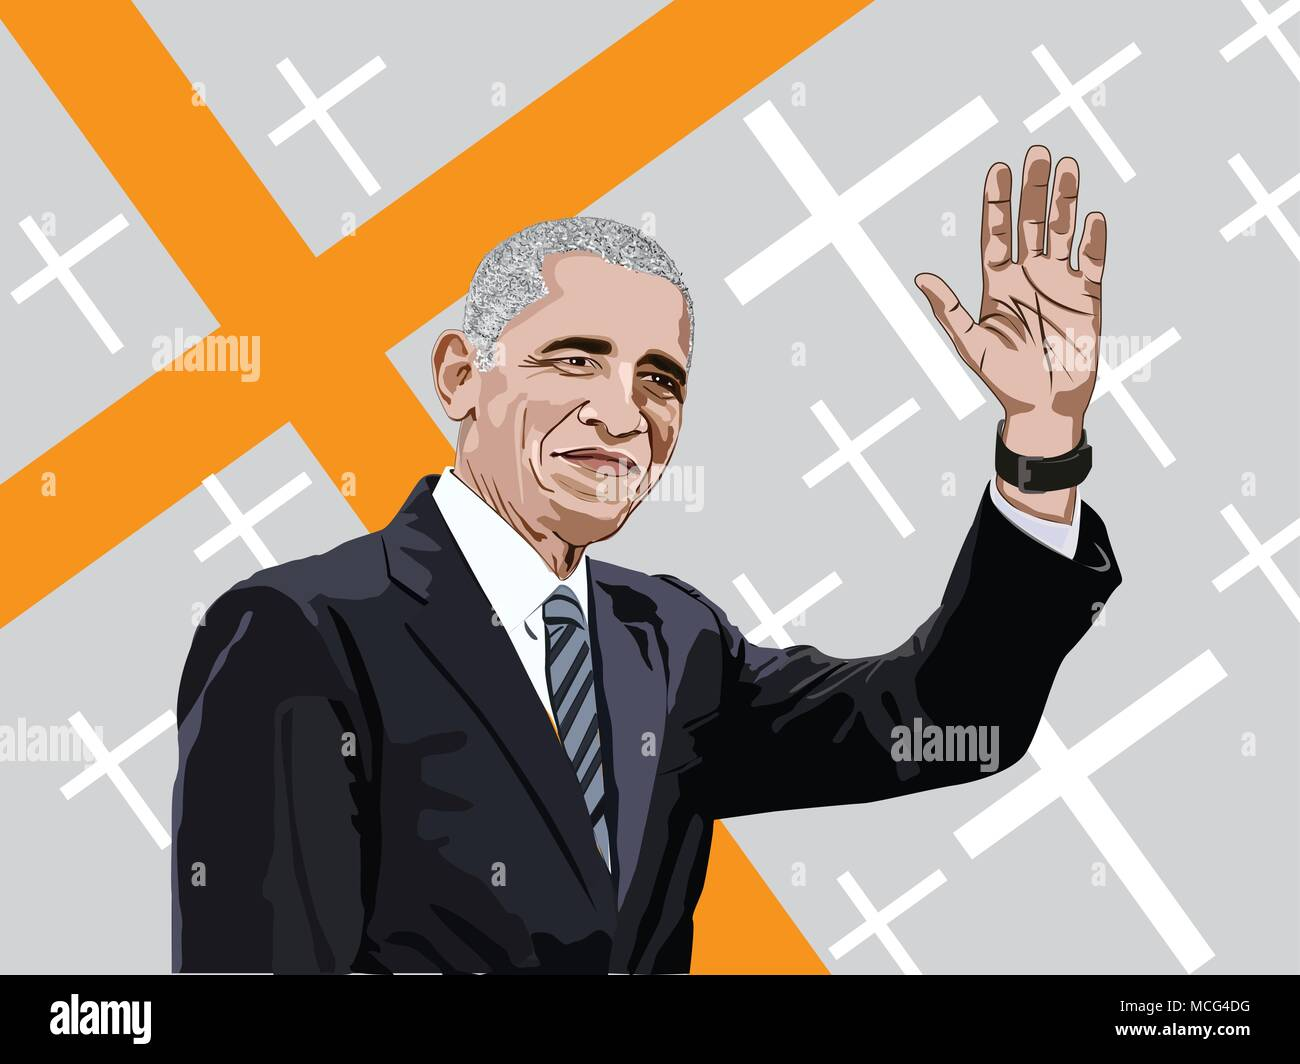 Barack Obama II is an American politician who served as the 44th President of the United States from 2009 to 2017. Obama vector image, - Stock Vector